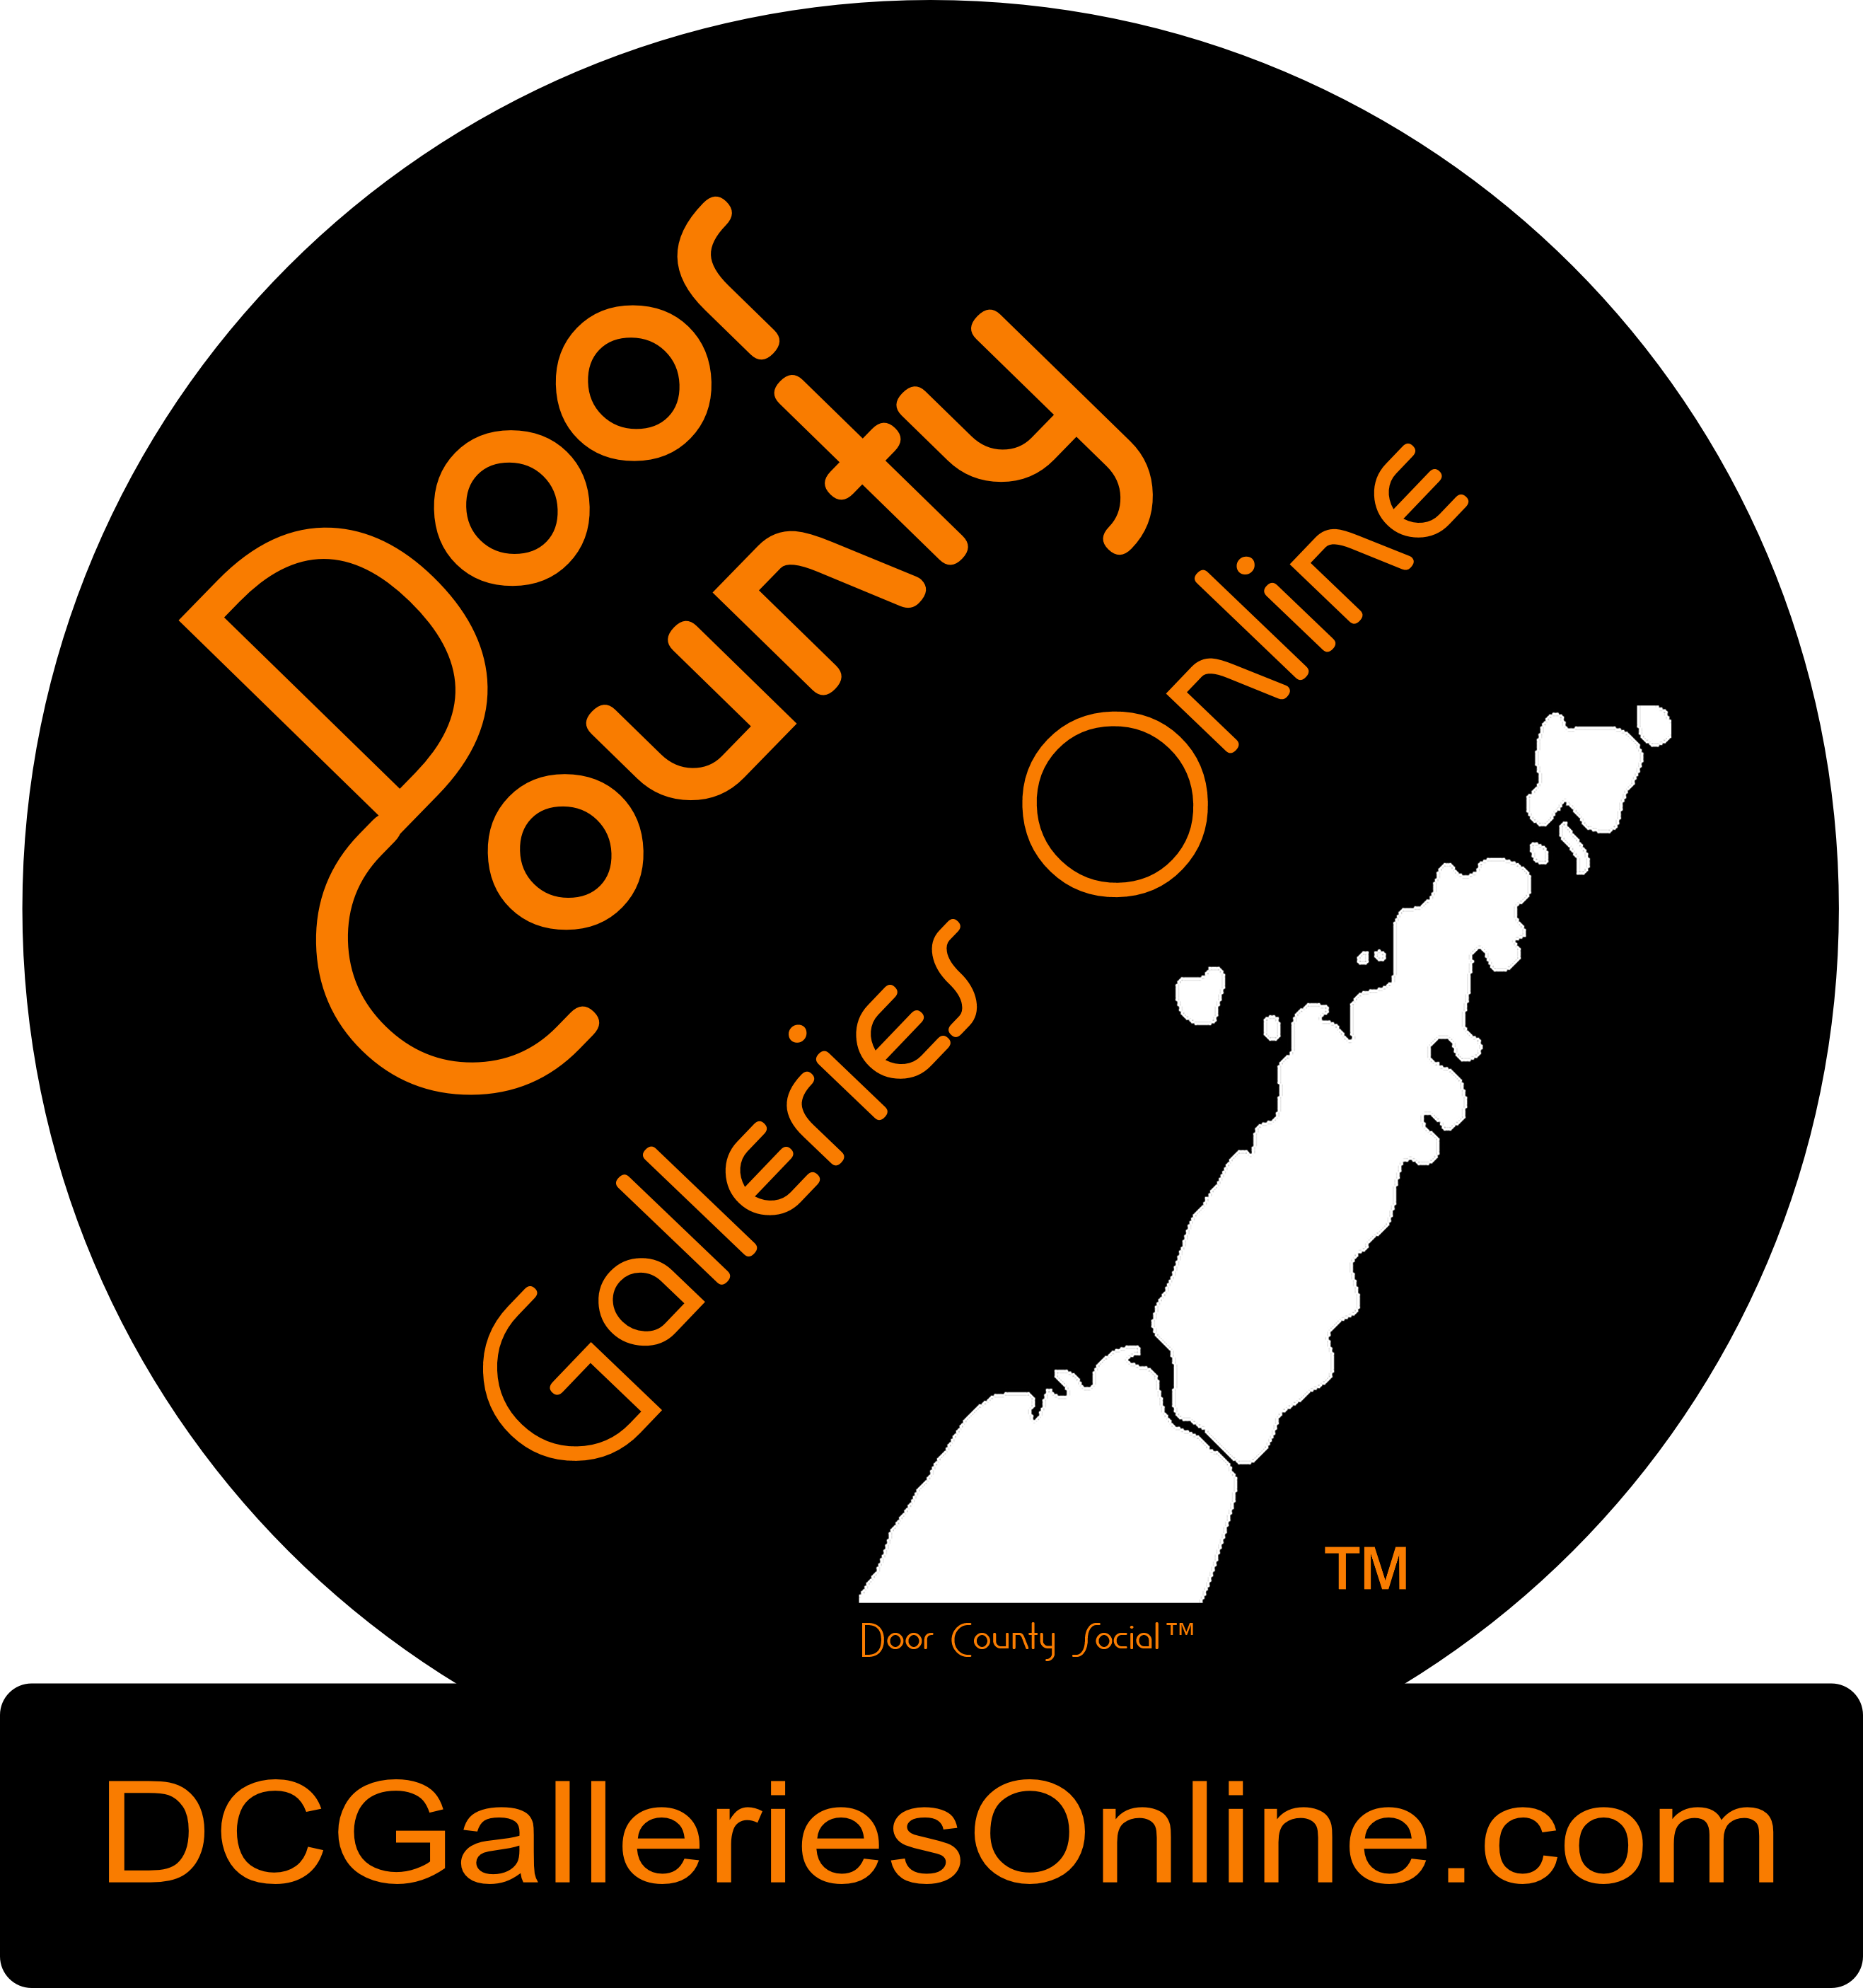 Door County Social Gallery Of Fine Art And Photography